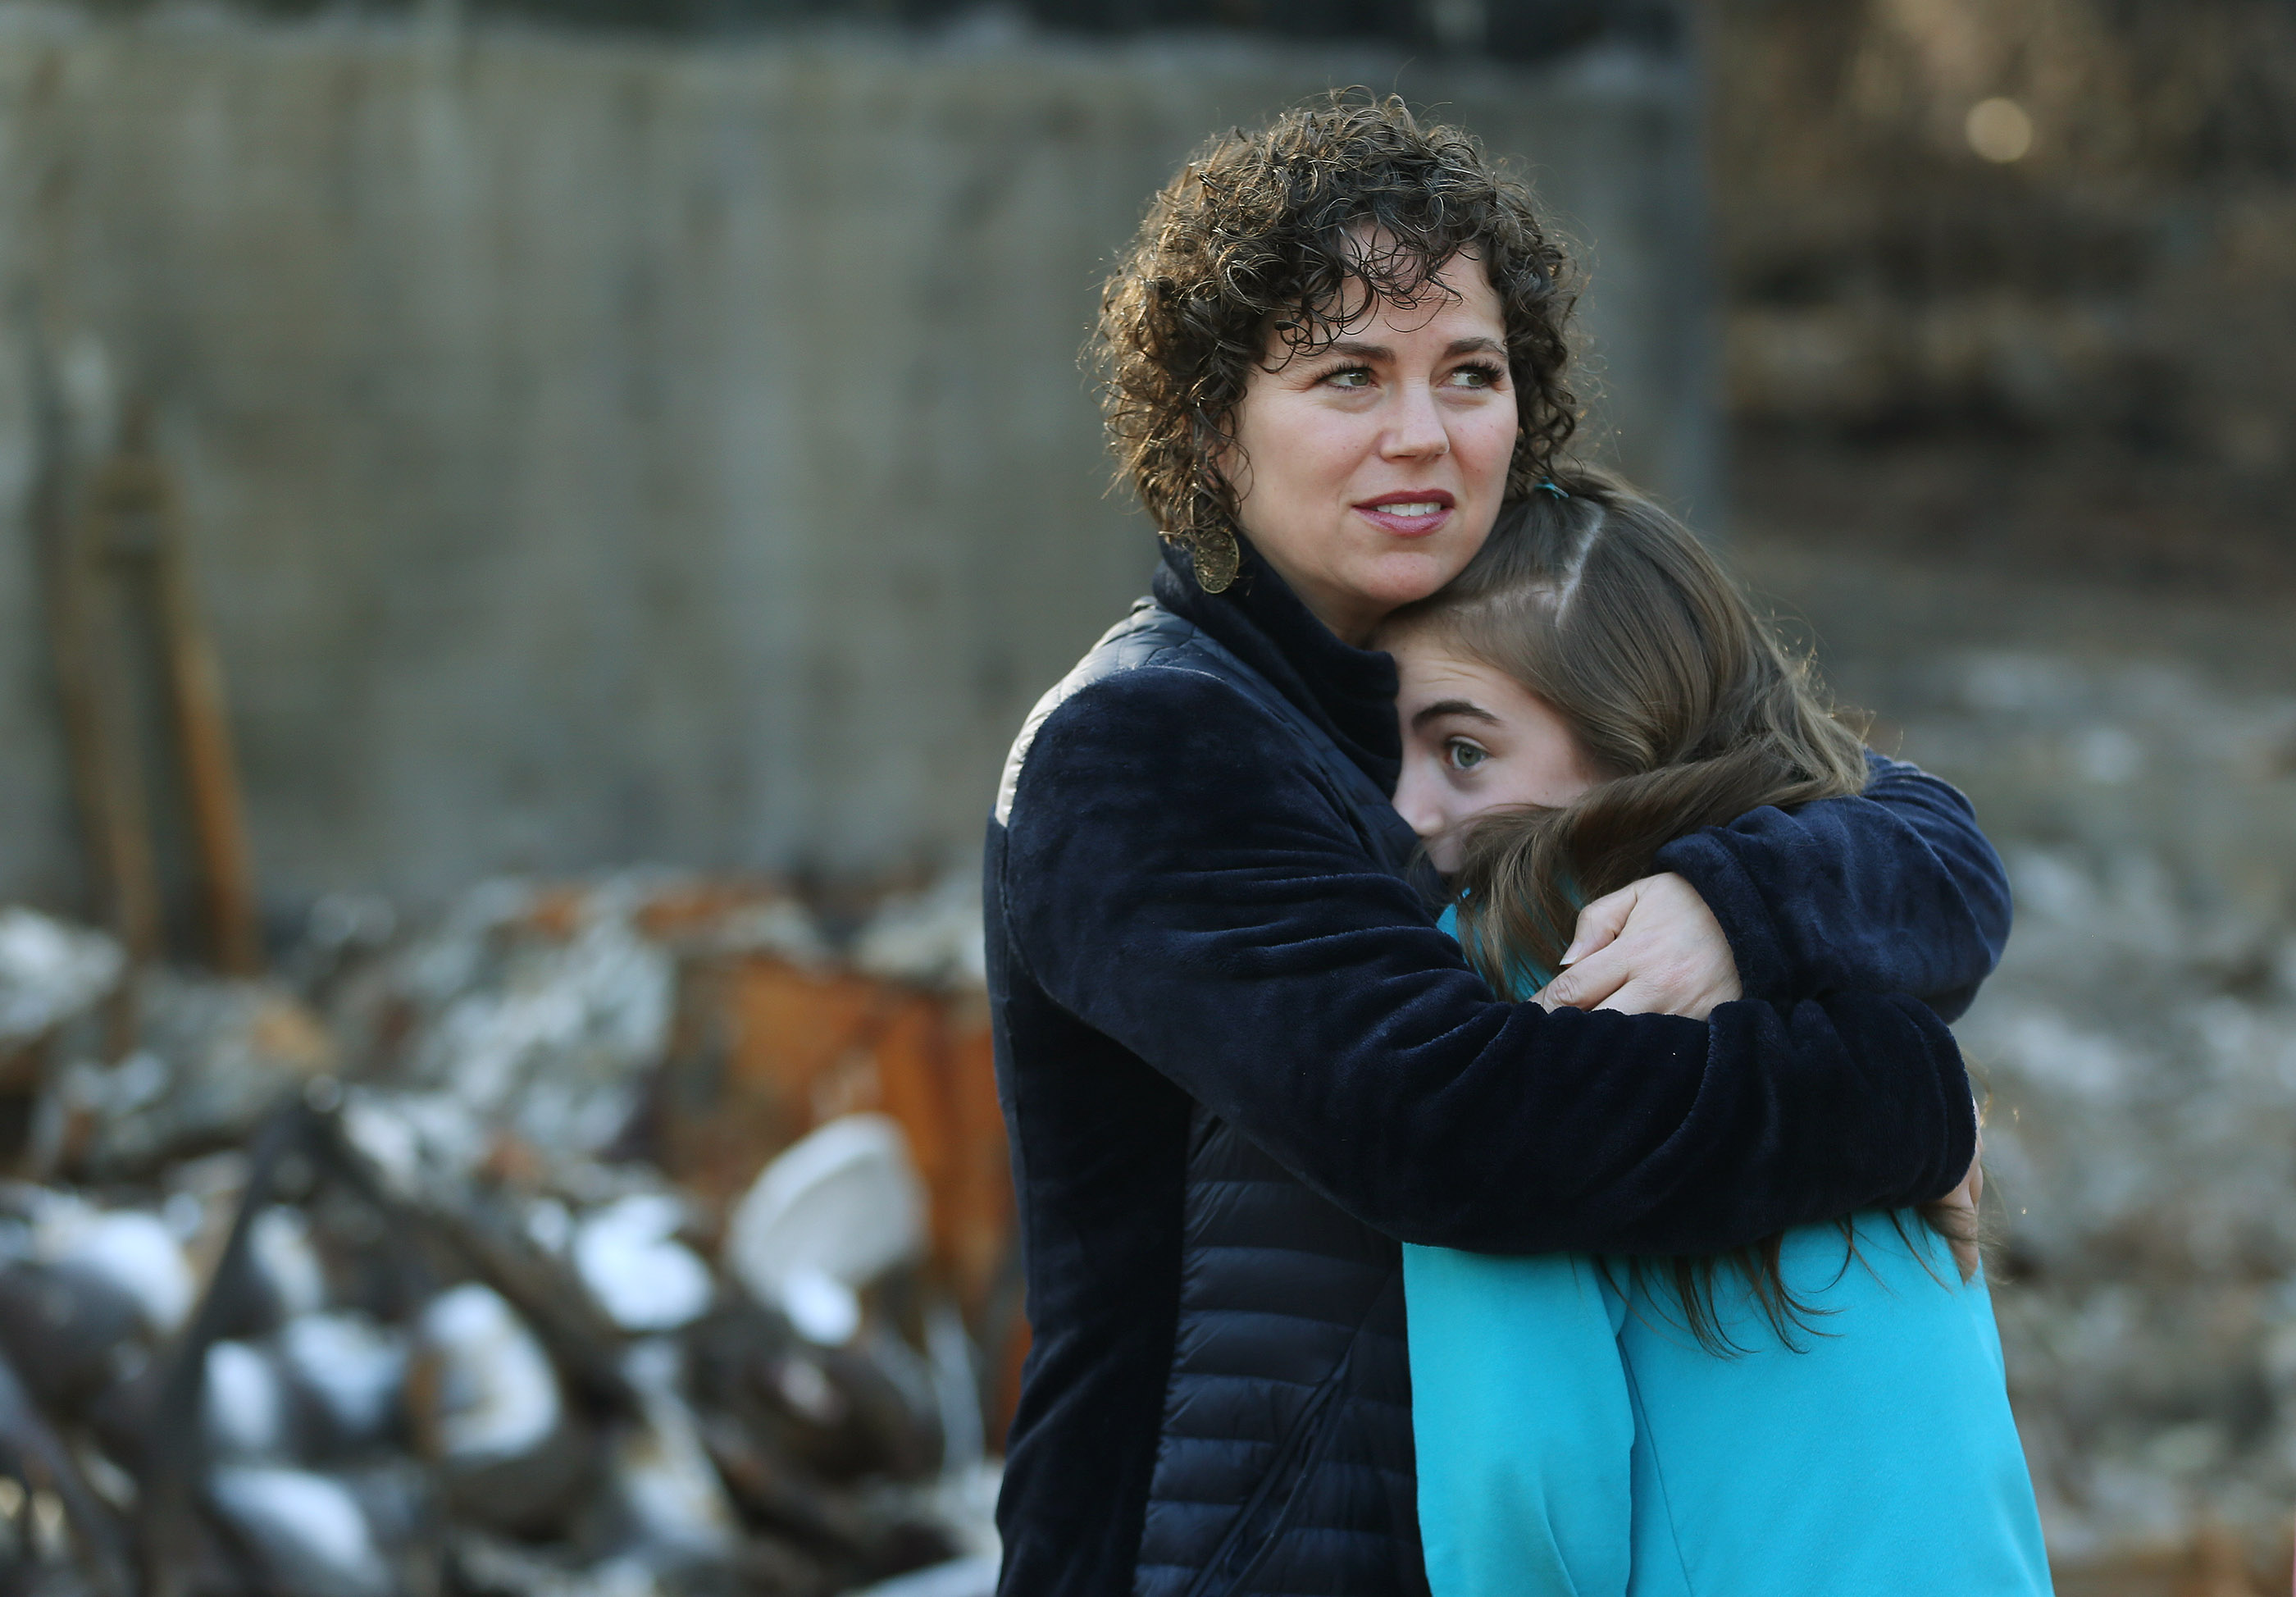 Brynn Chatfield holds her daughter Mckell as they survey their destroyed home in Paradise, California, on Saturday, Jan. 12, 2019, two months after the Camp Fire destroyed more than 18,000 homes and businesses.